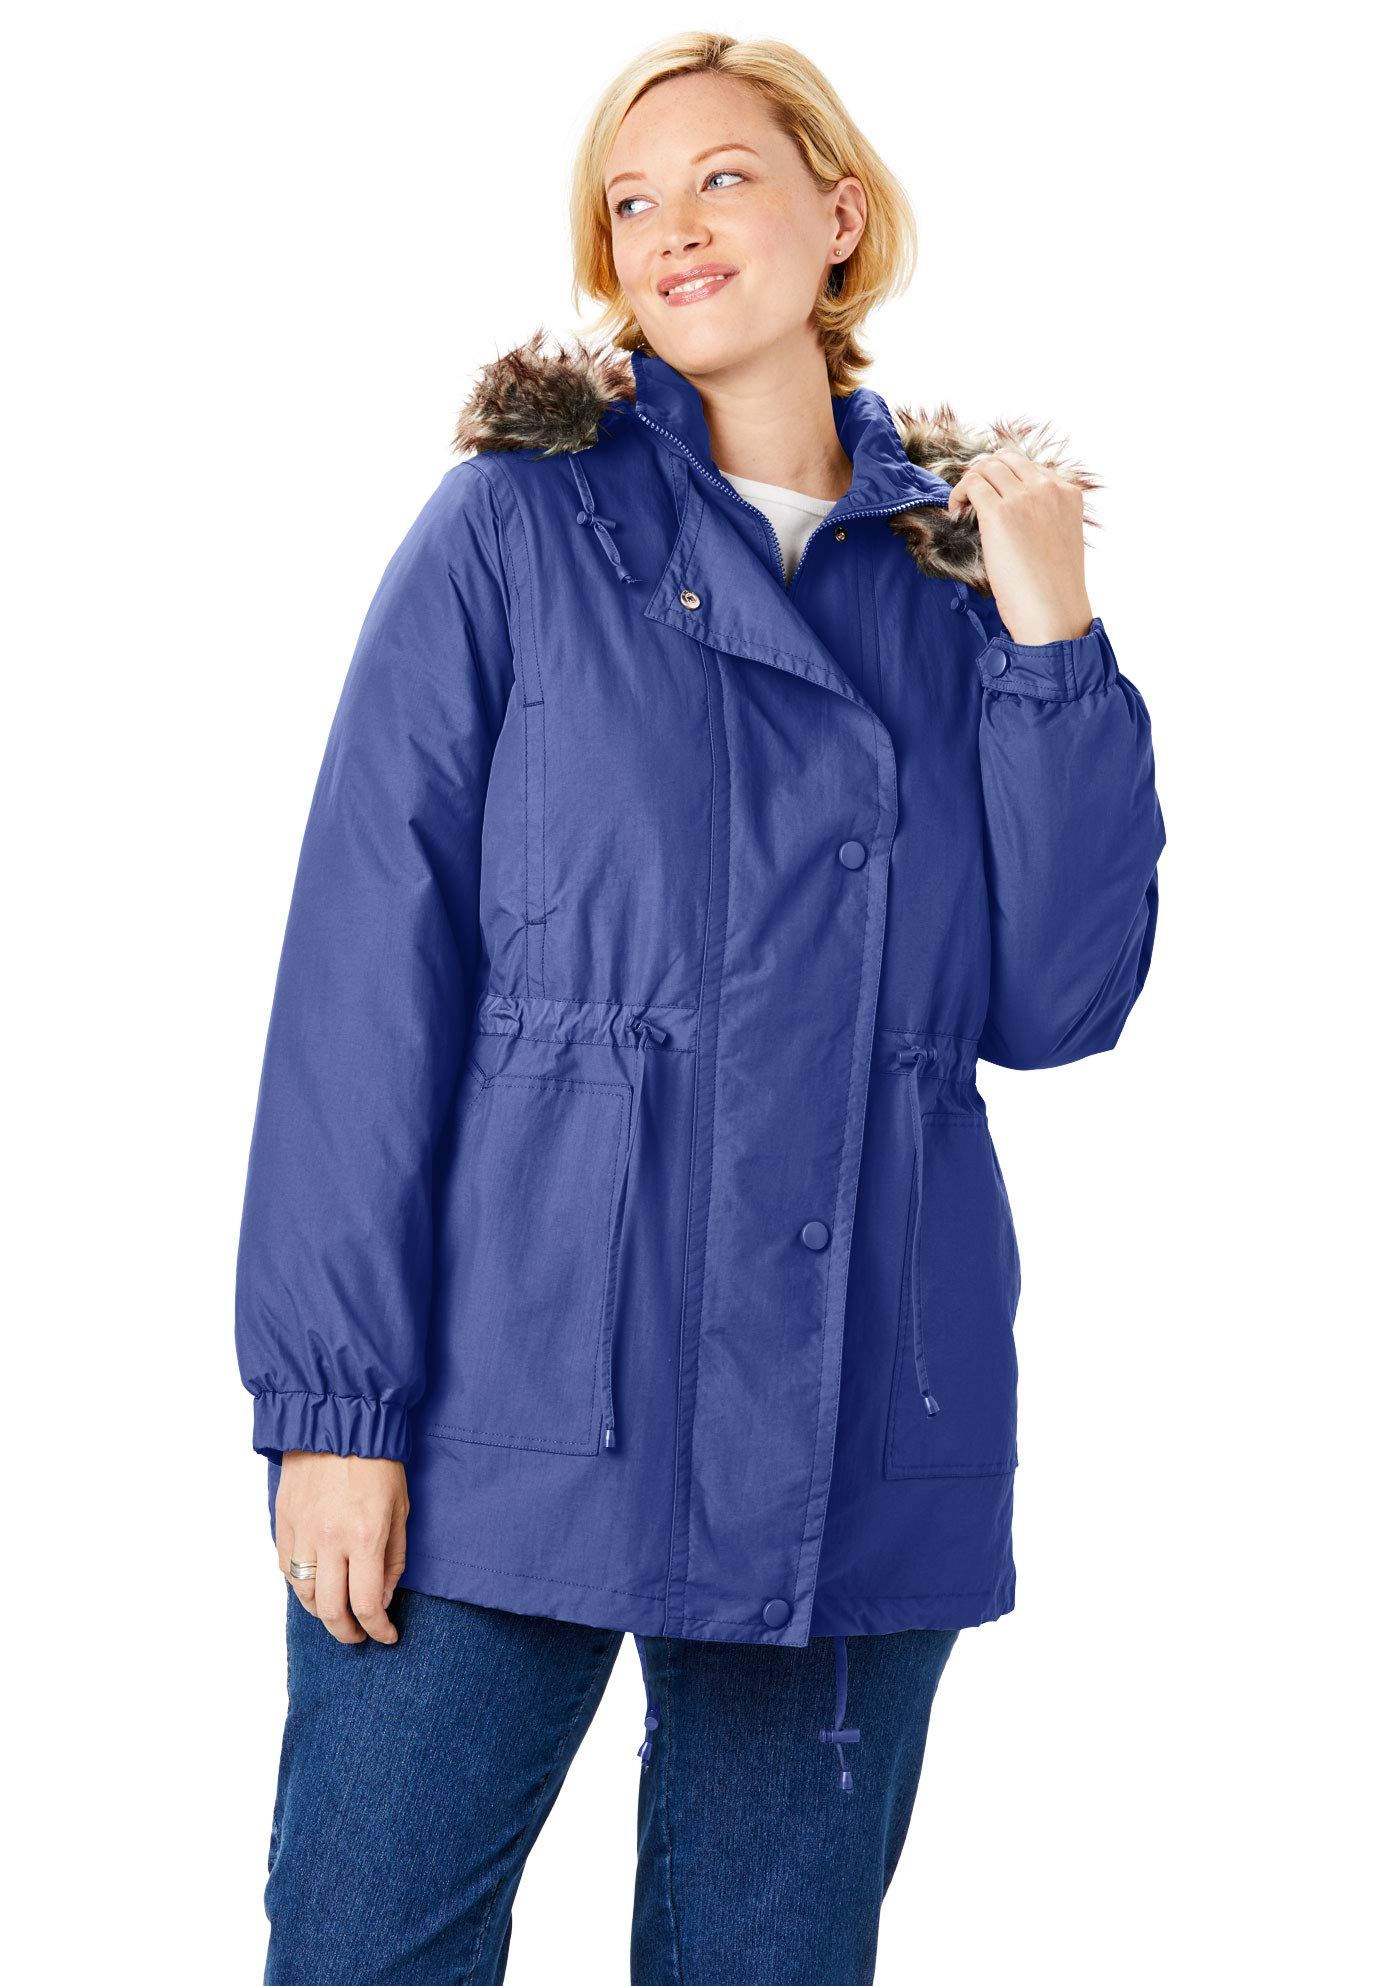 Woman Within Women's Plus Size Quilt-Lined Taslon Anorak - Ultra Blue, 4X by Woman Within